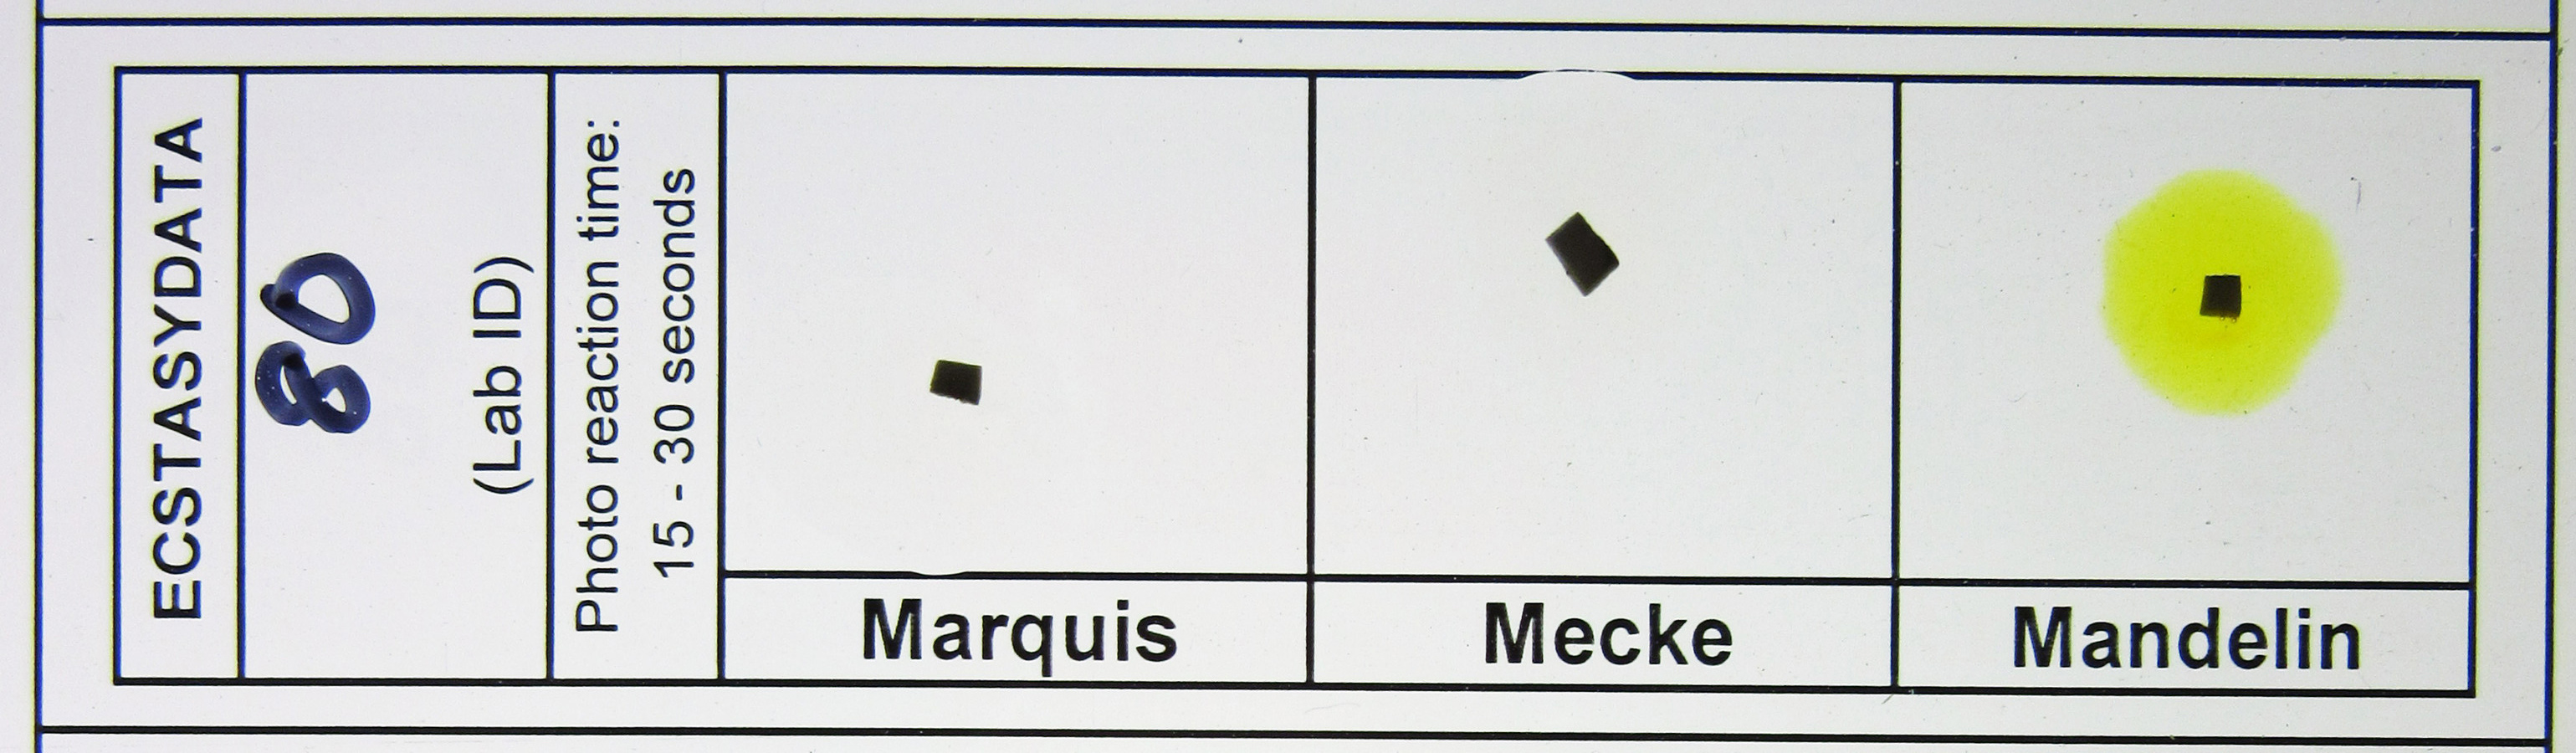 "Figure 2 LSD sample confirmed by GC/MS produces no response to Marquis, Mecke, or Mandelin reagents.  Black squares shown to illustrate blotter location do not indicate a ""black"" color reaction to these tests."